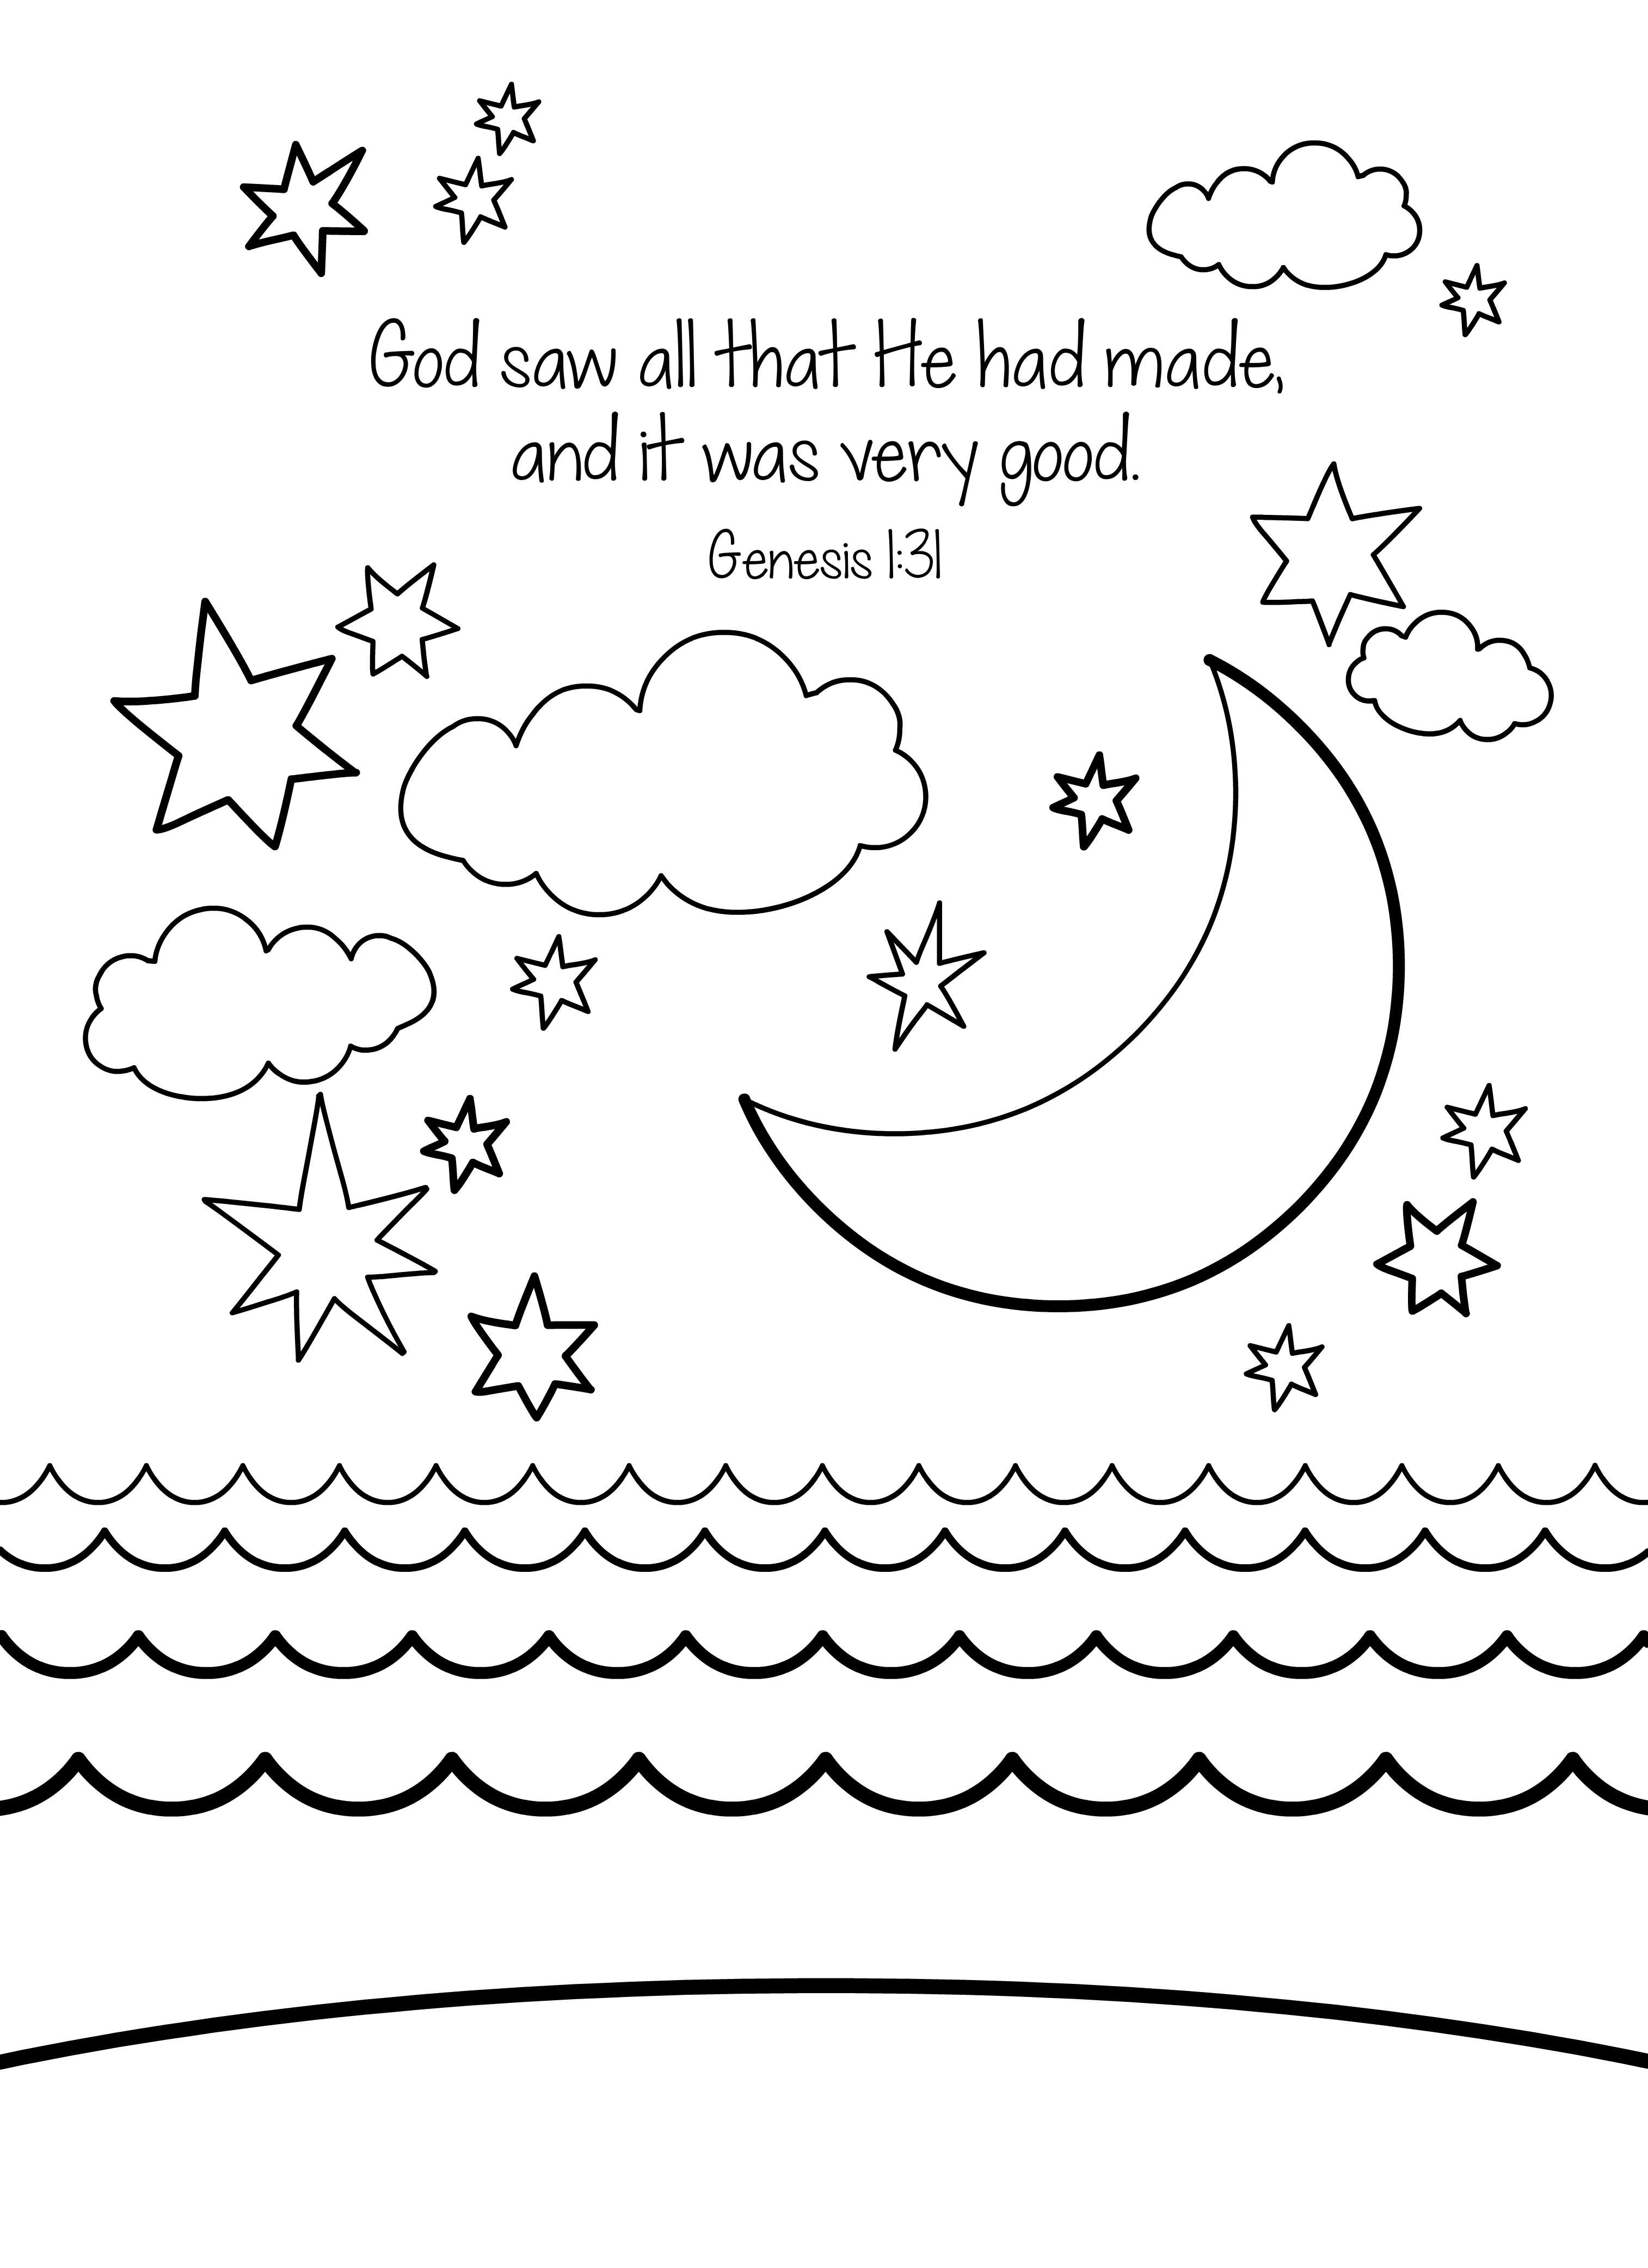 Bible Memory Verse Coloring Sheet